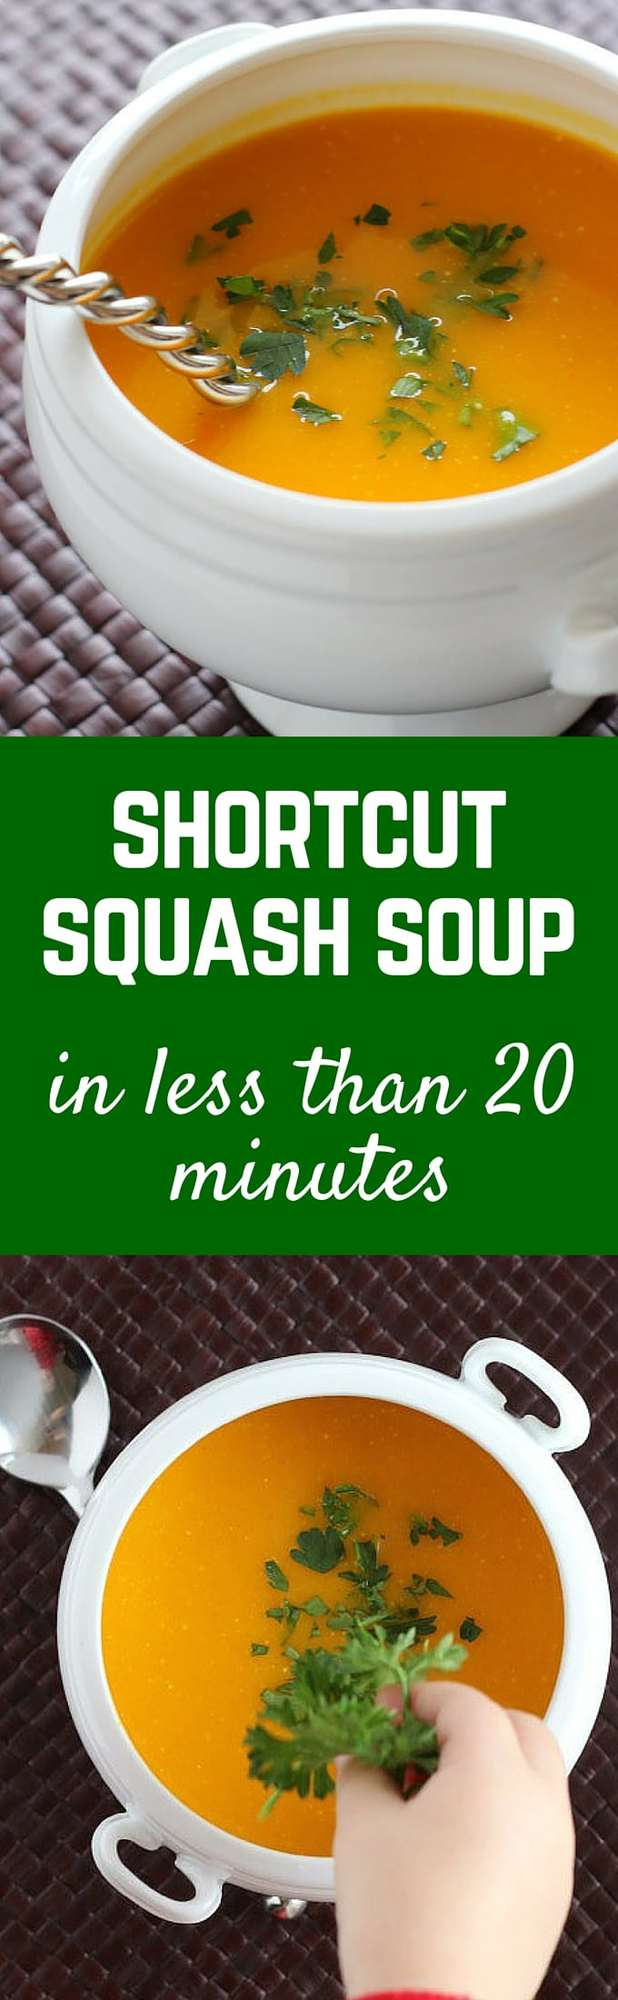 This shortcut squash soup is ready in just 20 minutes - but you won't miss out on any flavor, this soup is packed with nutrition and flavor. Get the easy soup recipe on RachelCooks.com!